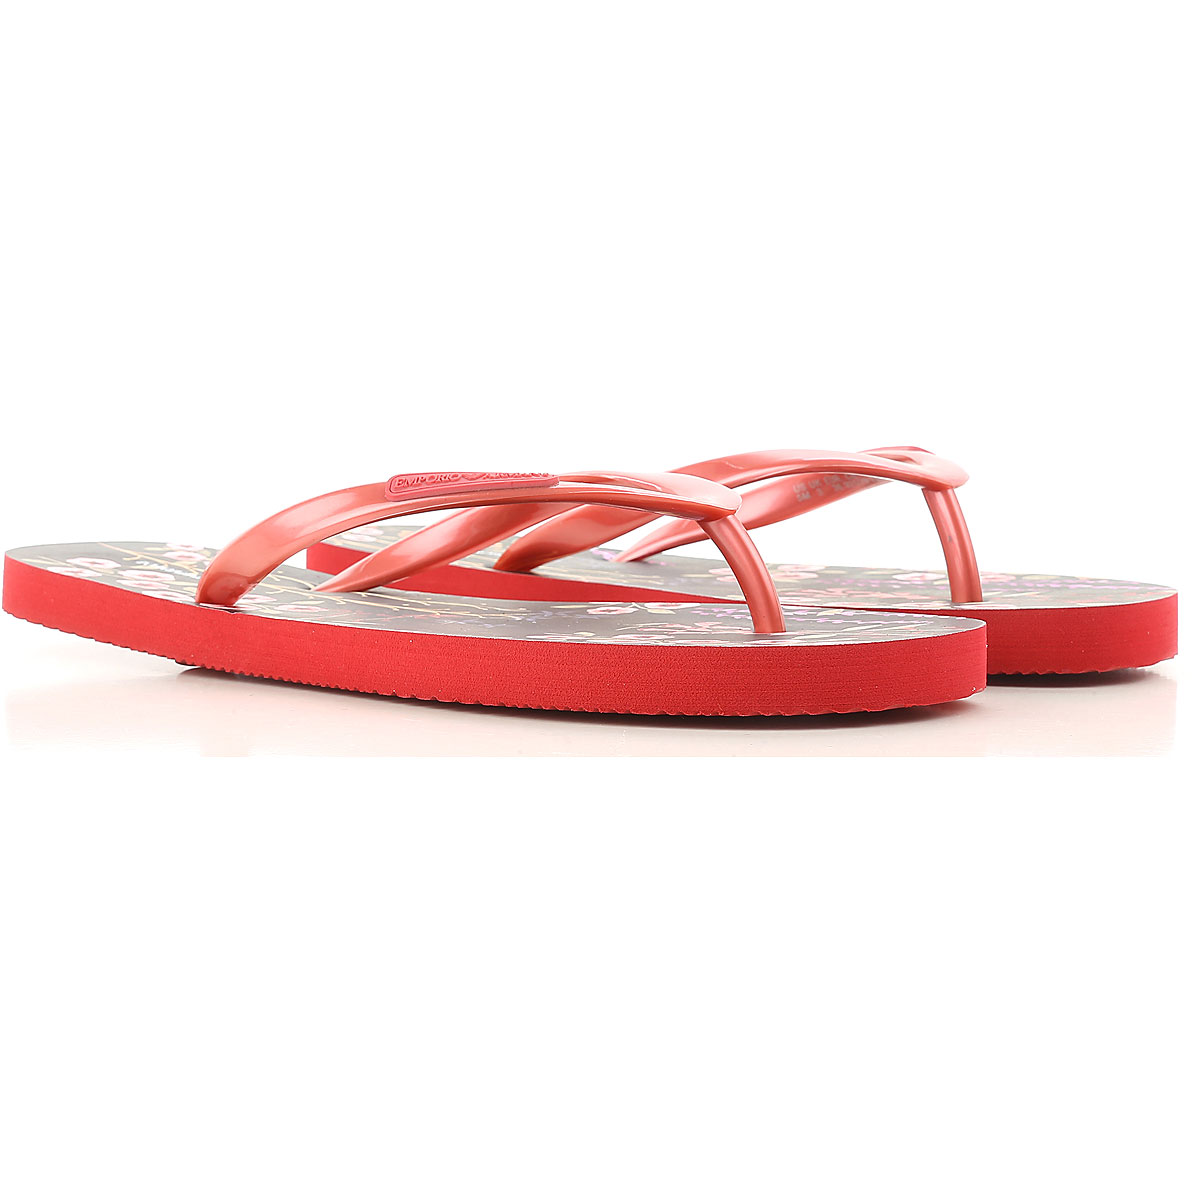 Image of Emporio Armani Flip Flops for Women, Thongs On Sale, Red, PVC, 2017, 10 11 6